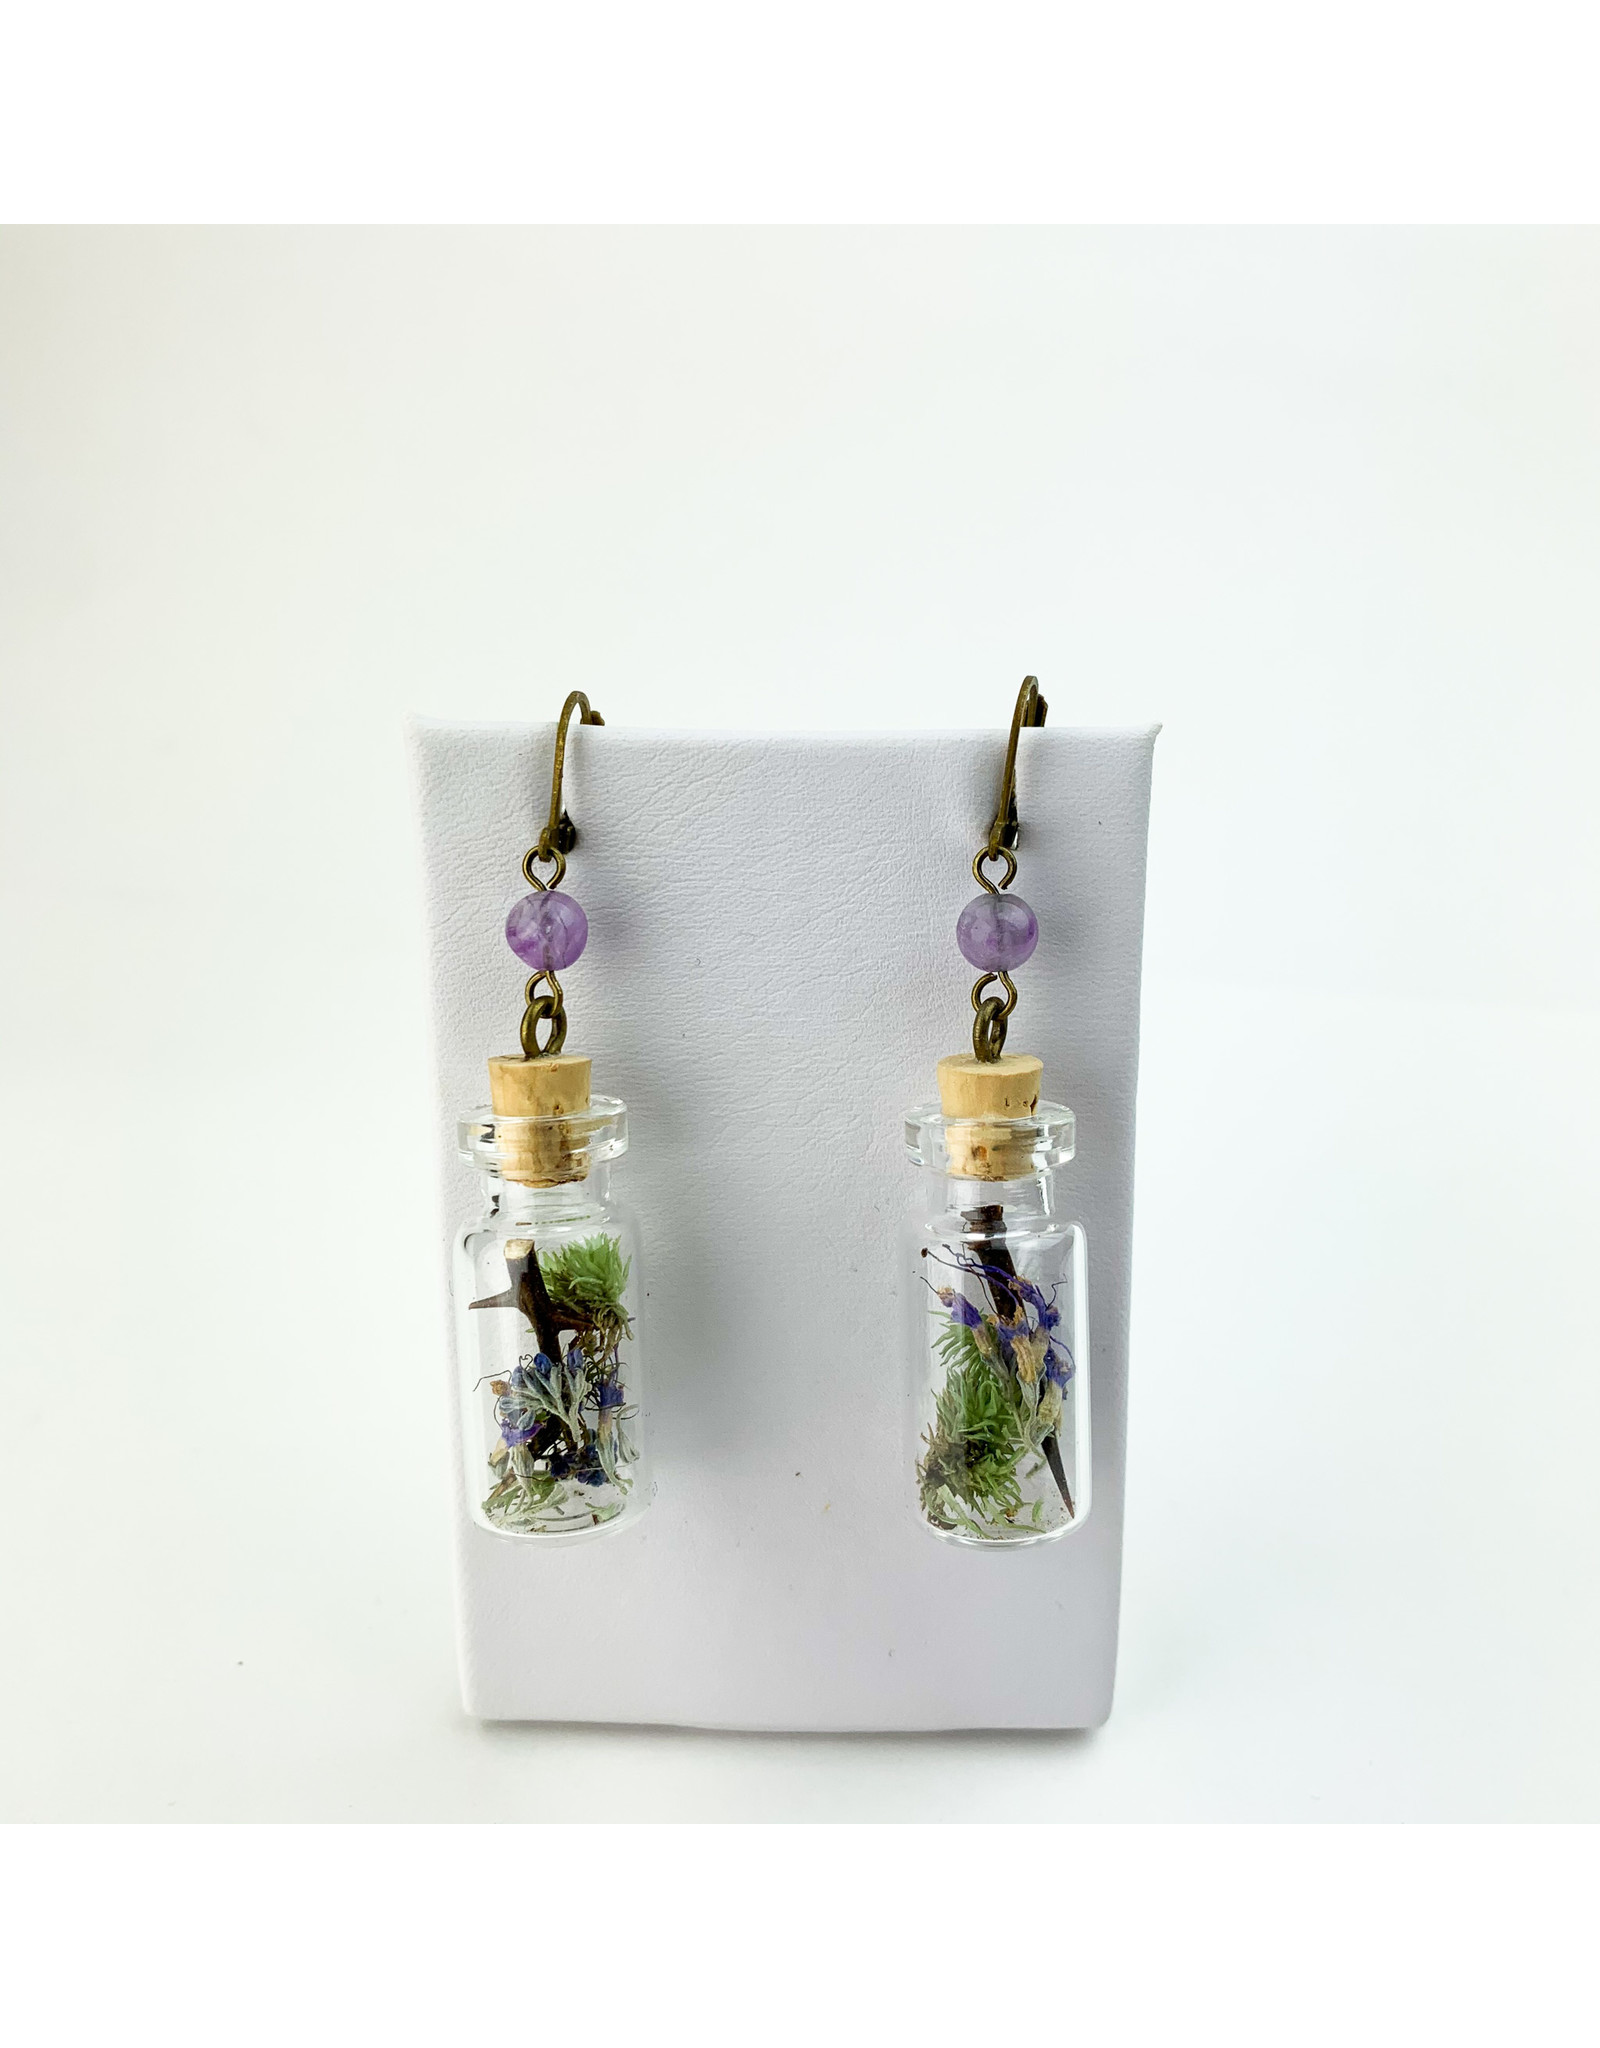 Fovea Works Consignment Artist FW15 Thorn Moss Sage Jars Iodized Brass Earrings